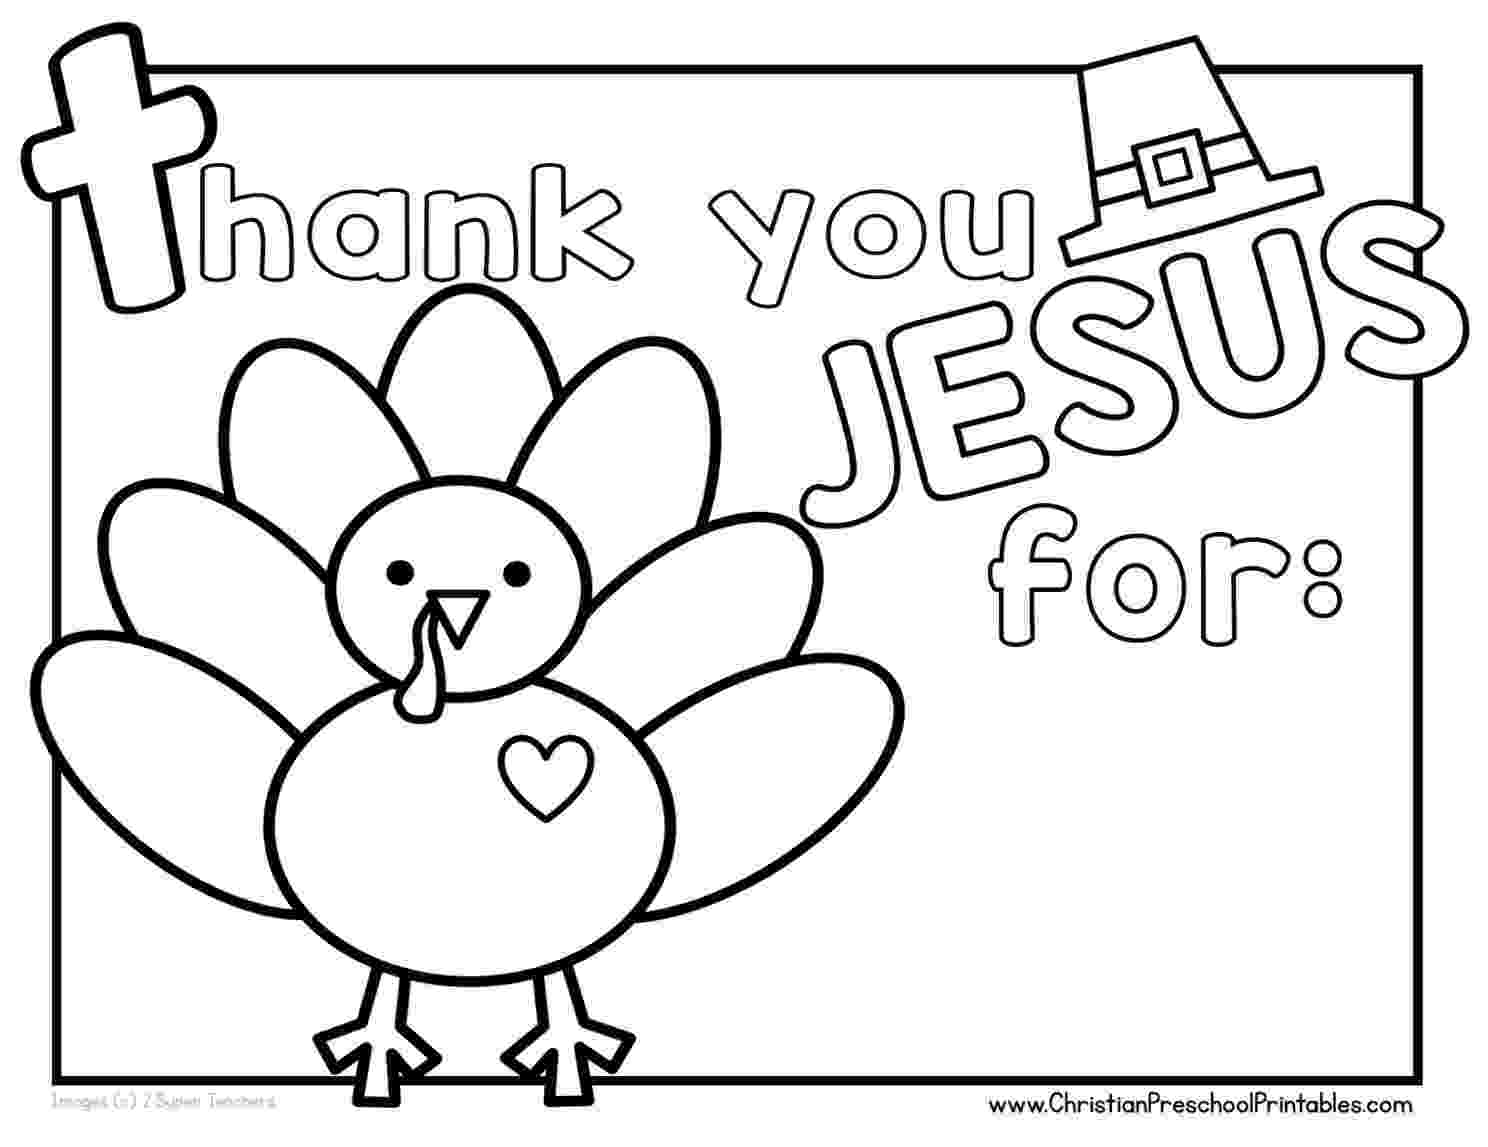 christian thanksgiving coloring pages first thanksgiving coloring pages seasonal crafts pages christian thanksgiving coloring